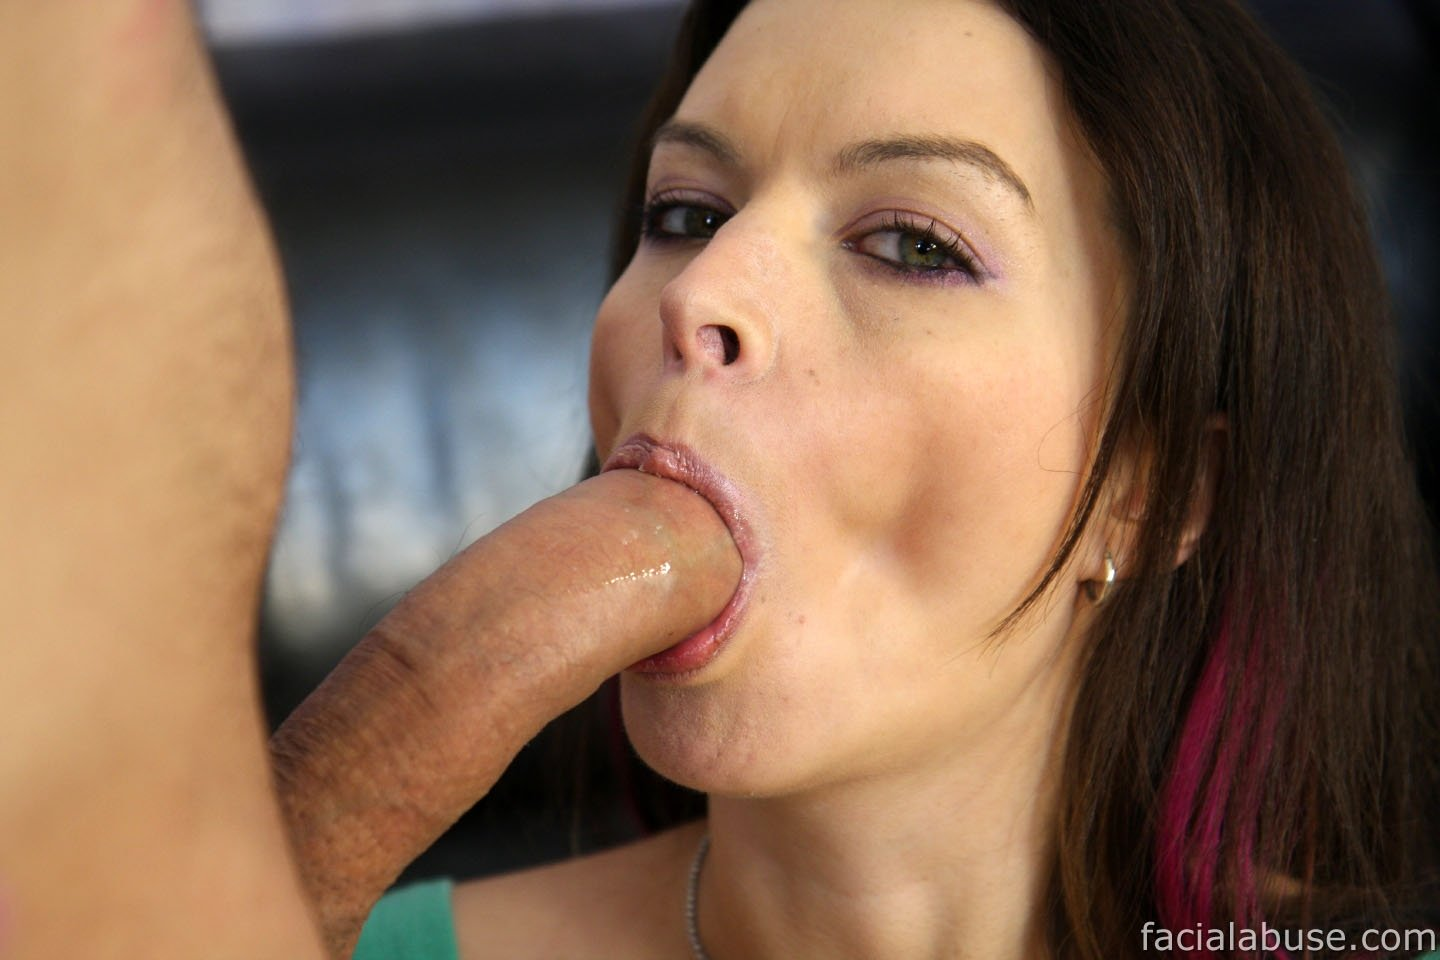 Miyyabi menstrubation First time nude in front of camera